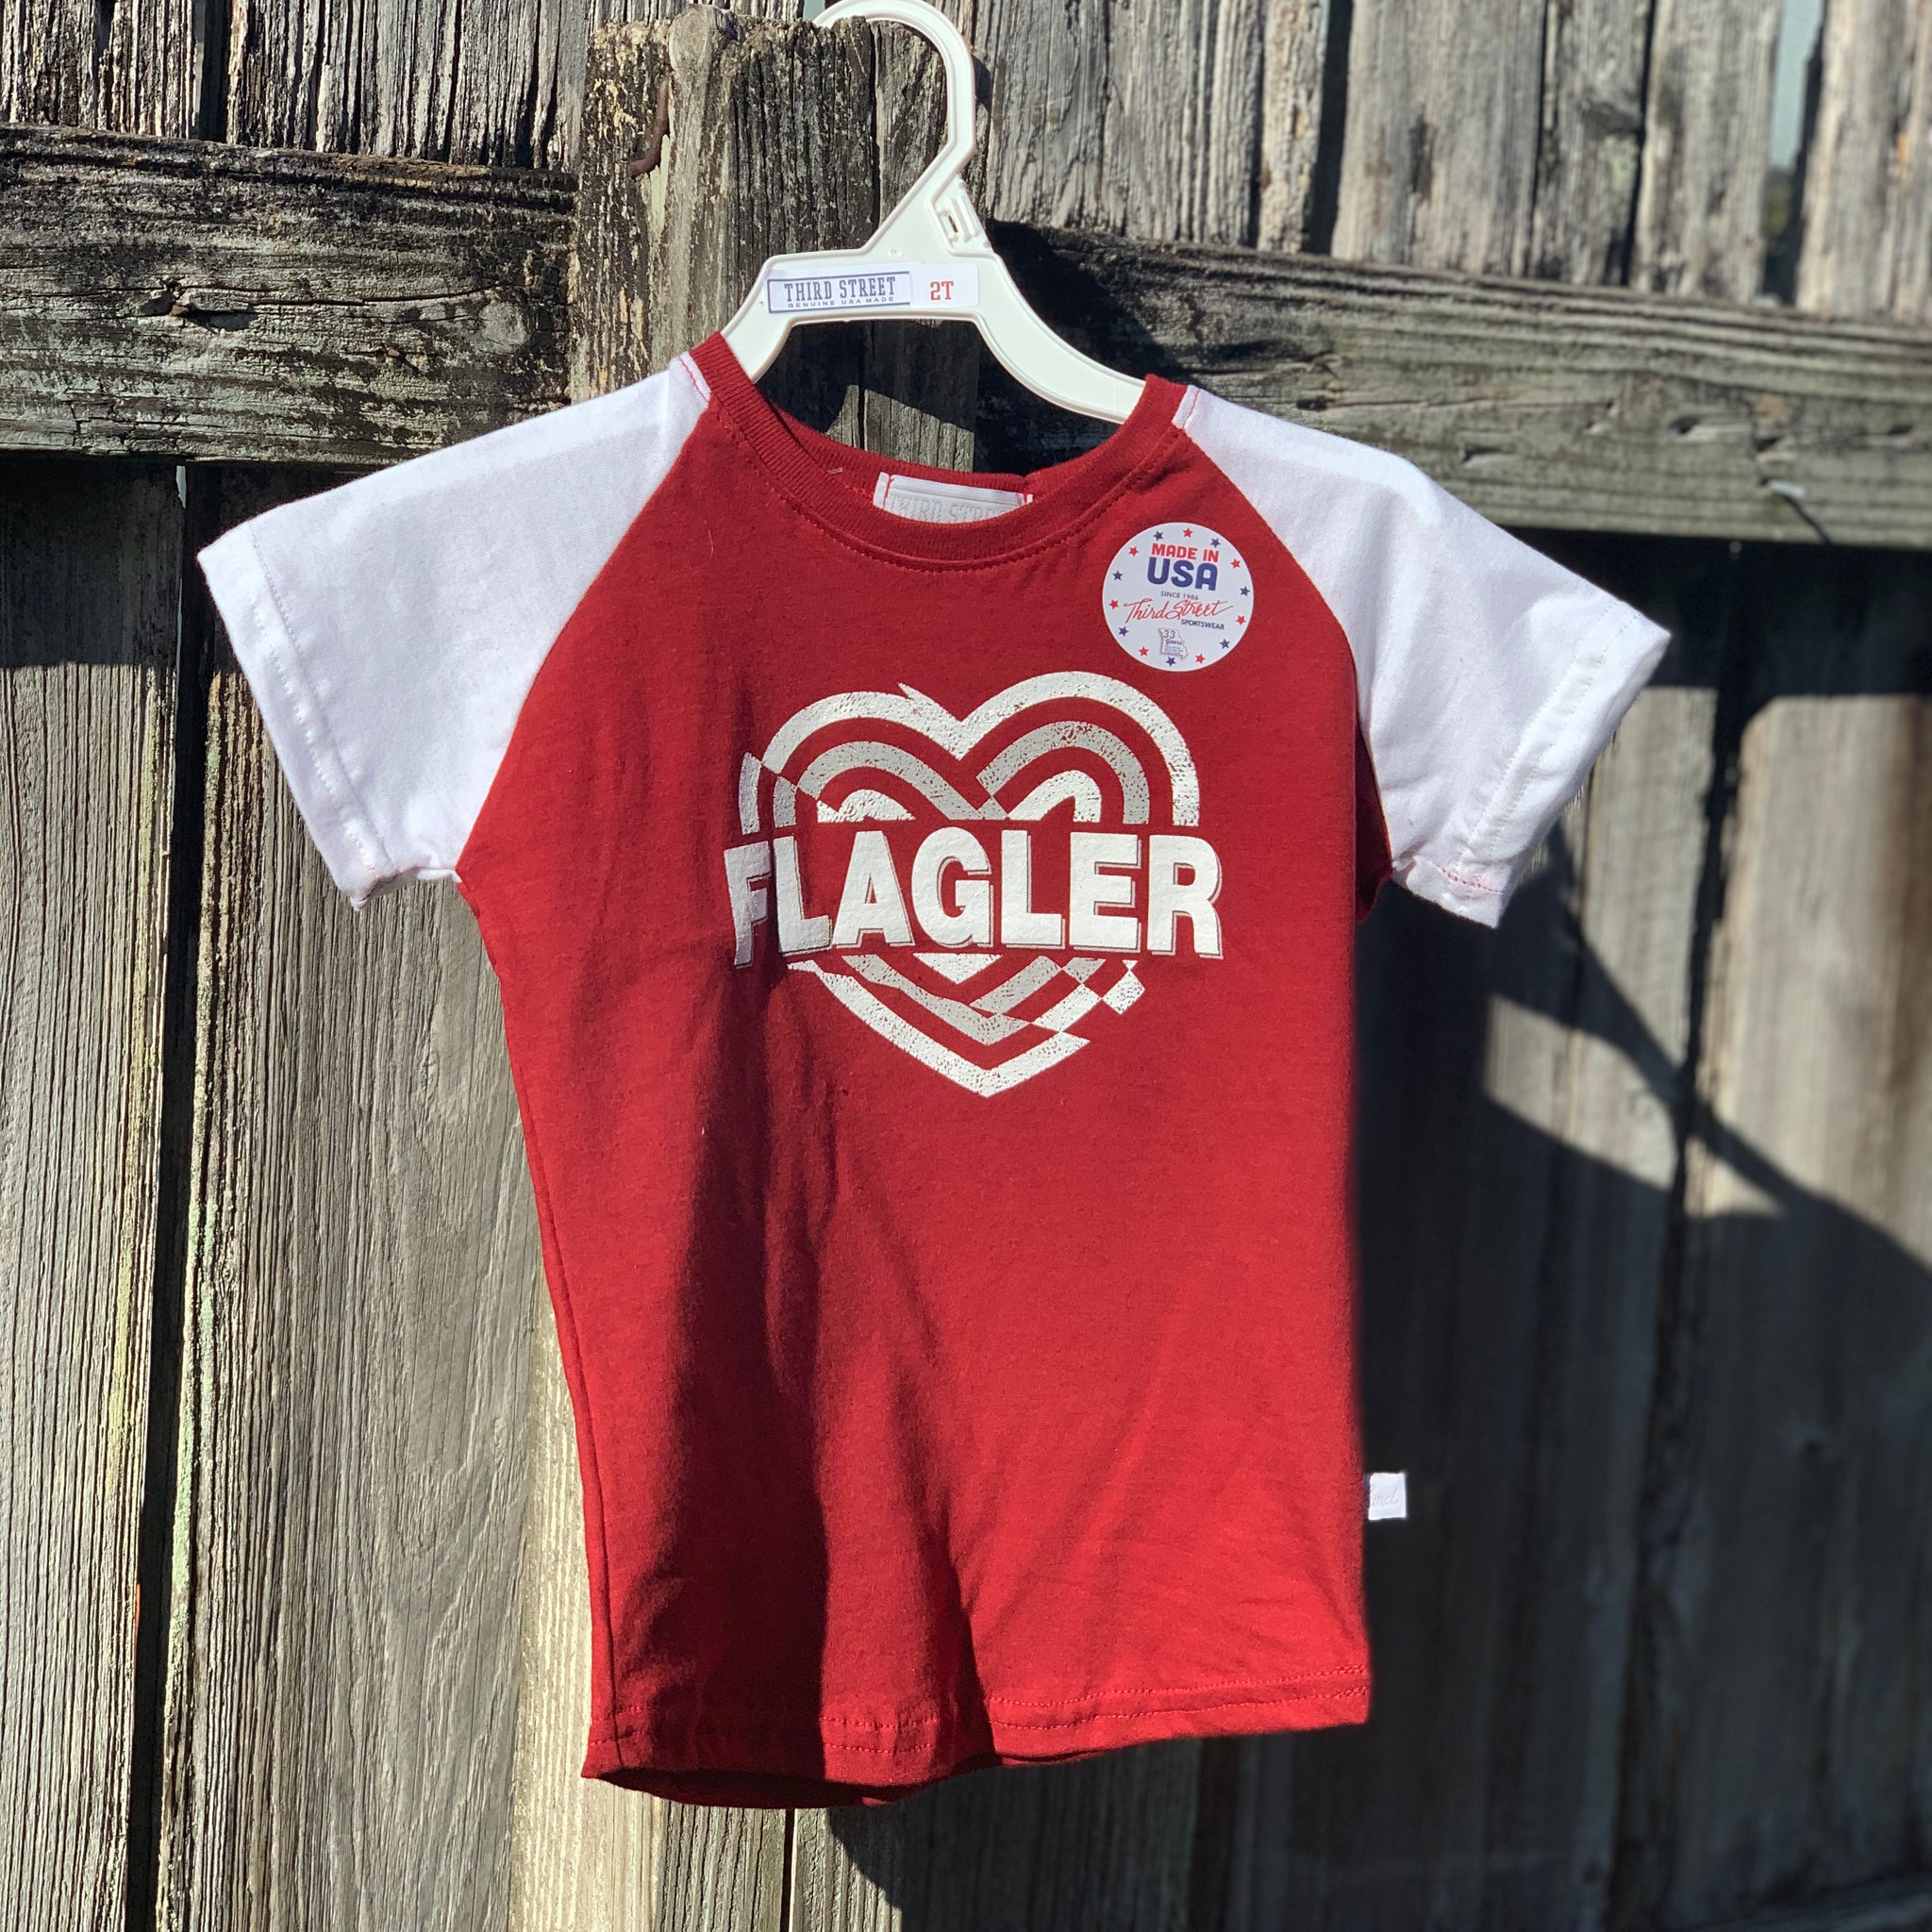 red girls t-shirt with Flagler printed in white in the middle of a heart